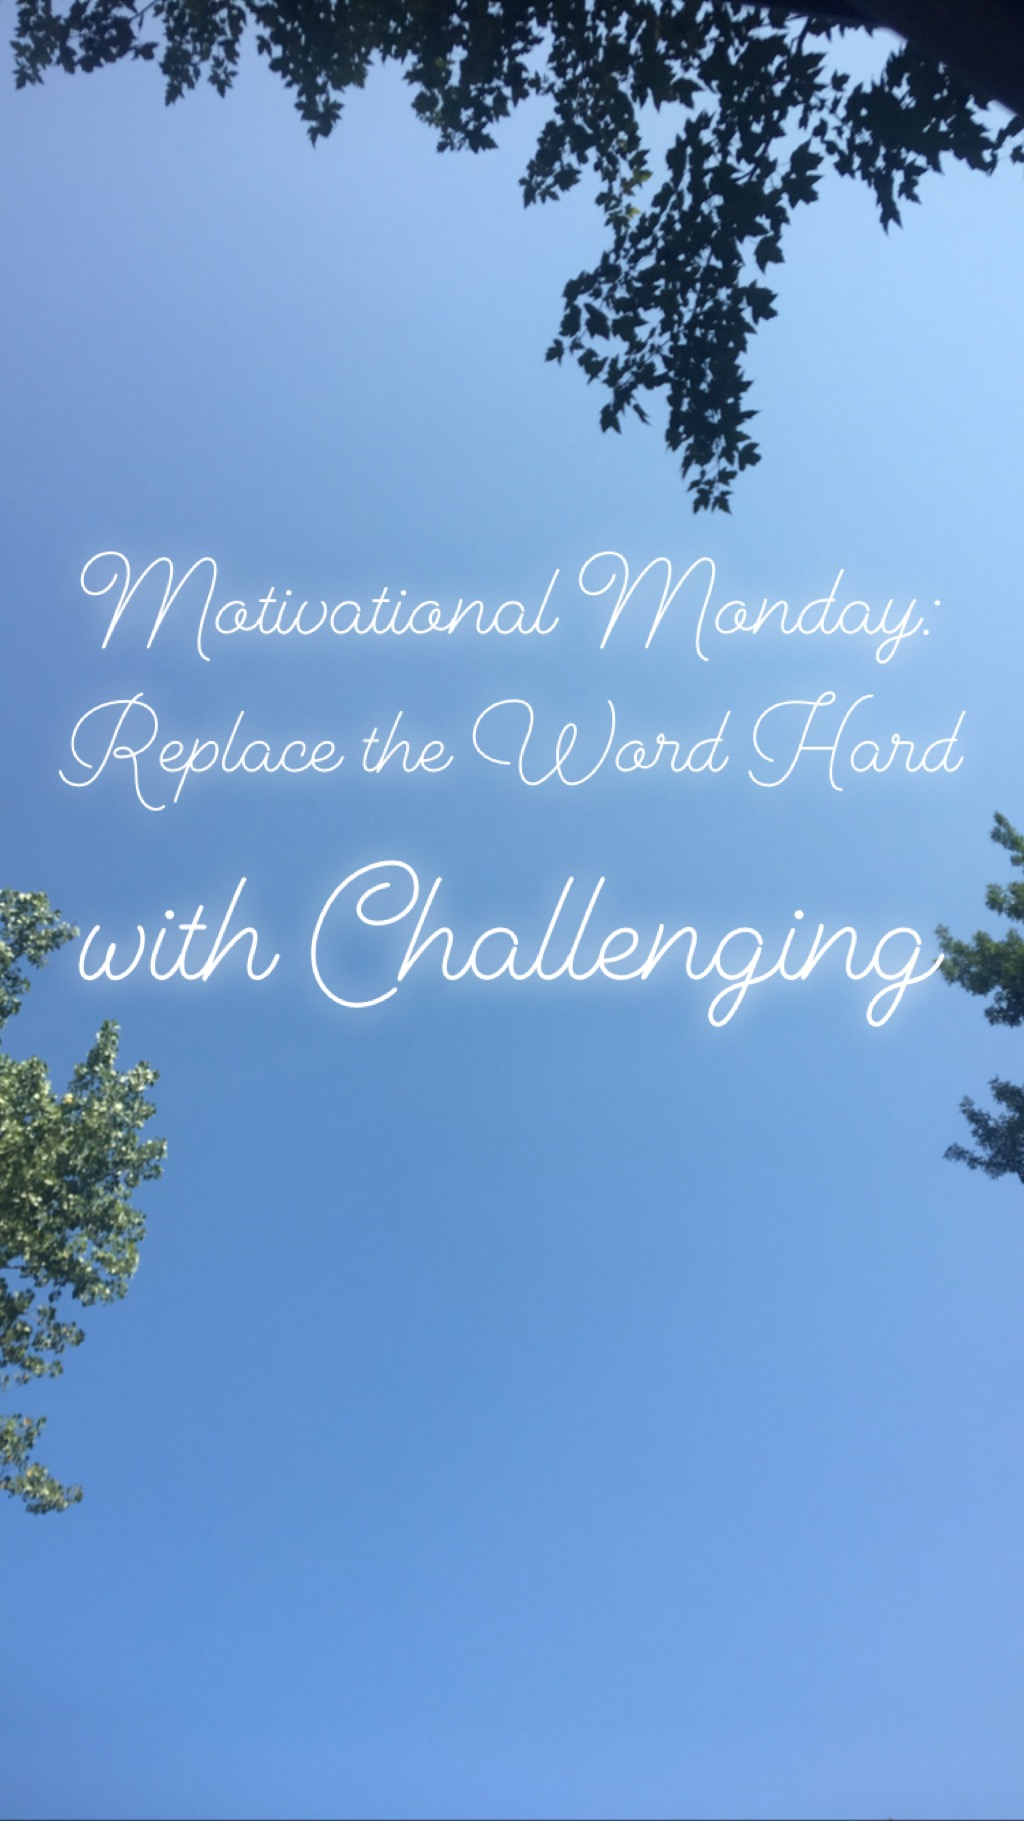 Motivational Monday: Replace the Word Hard with Challenging